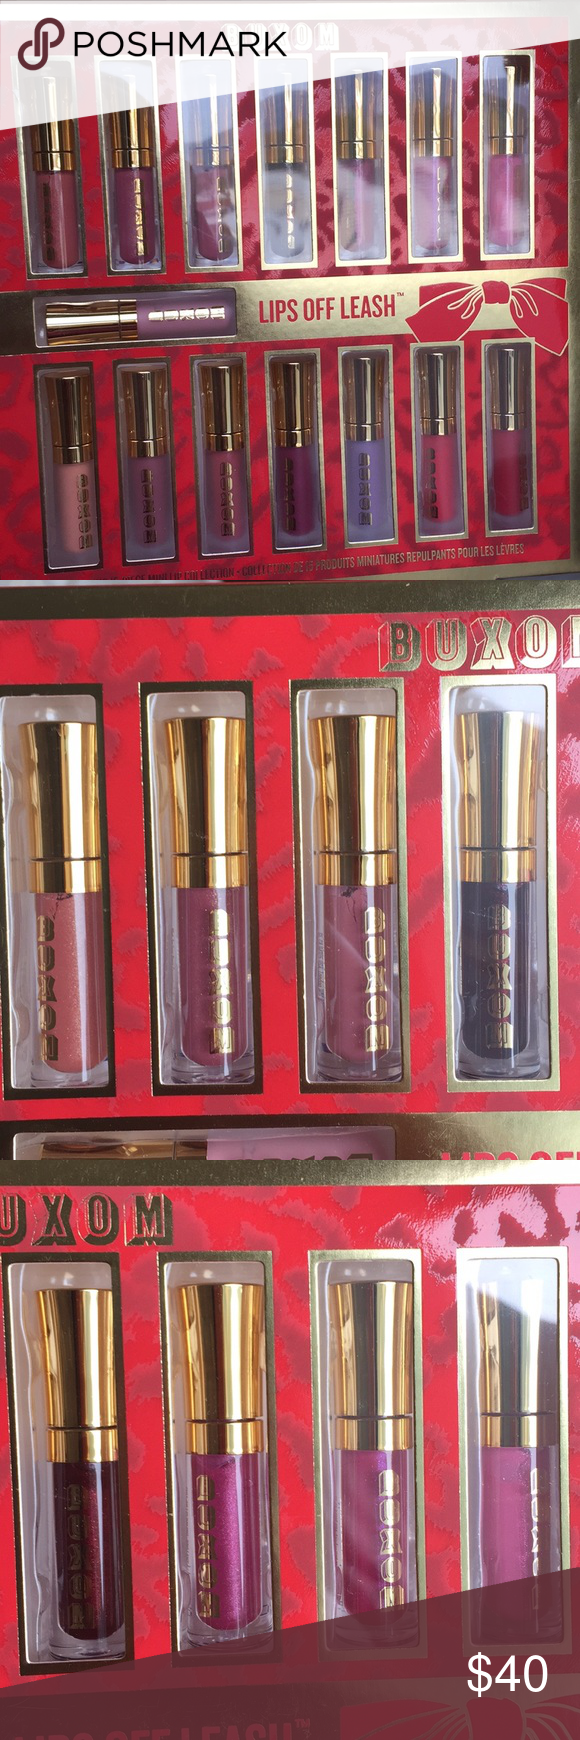 Lips Off Leash Plumping 15-piece Mini Lip Collection by Buxom #3